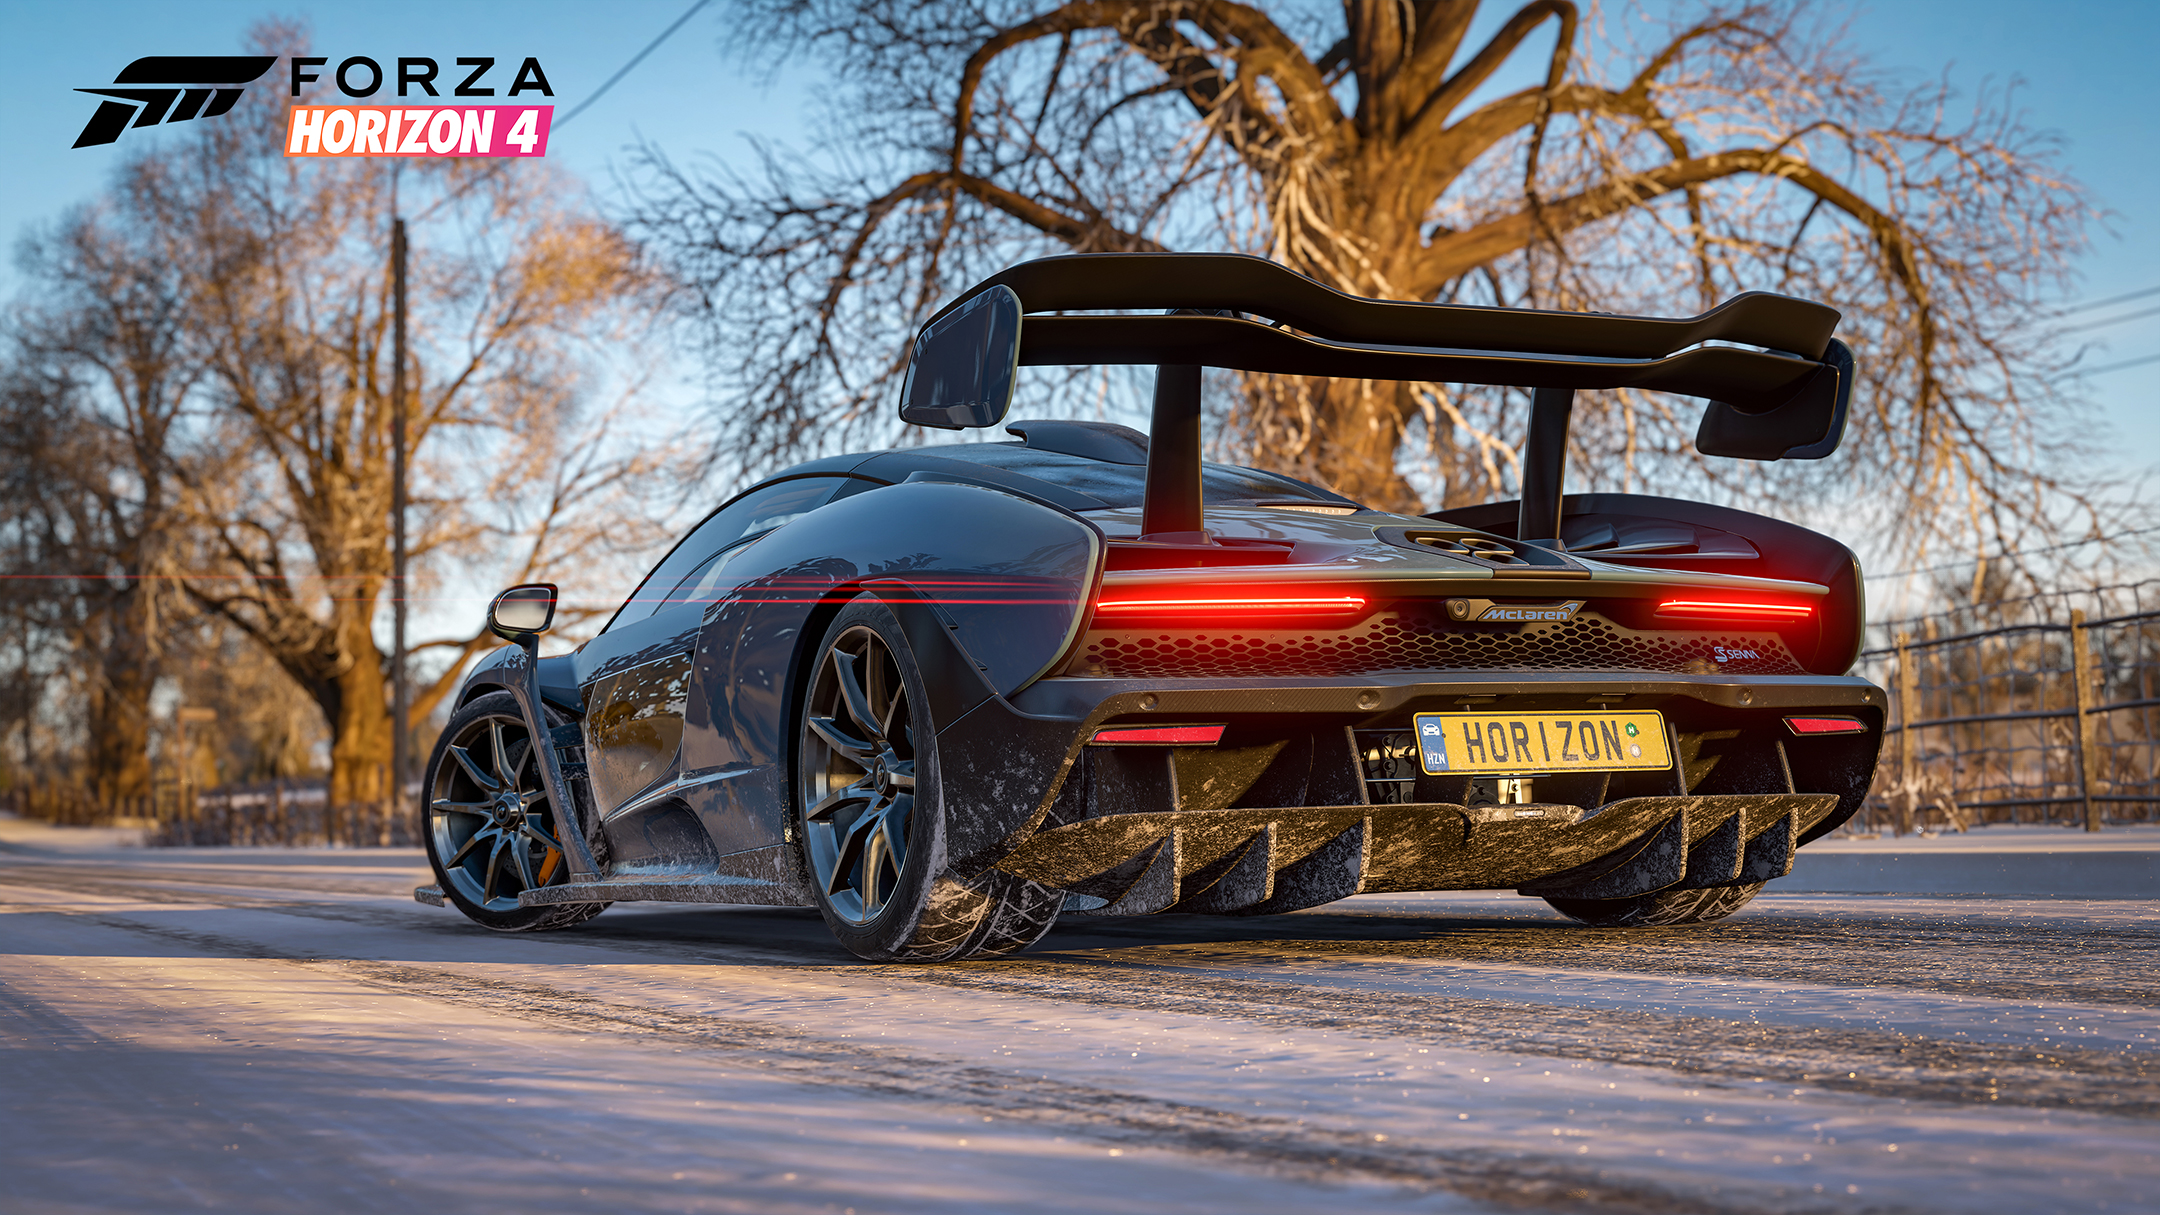 Forza Horizon 4 - 2018 - screen cars - McLaren Senna - winter